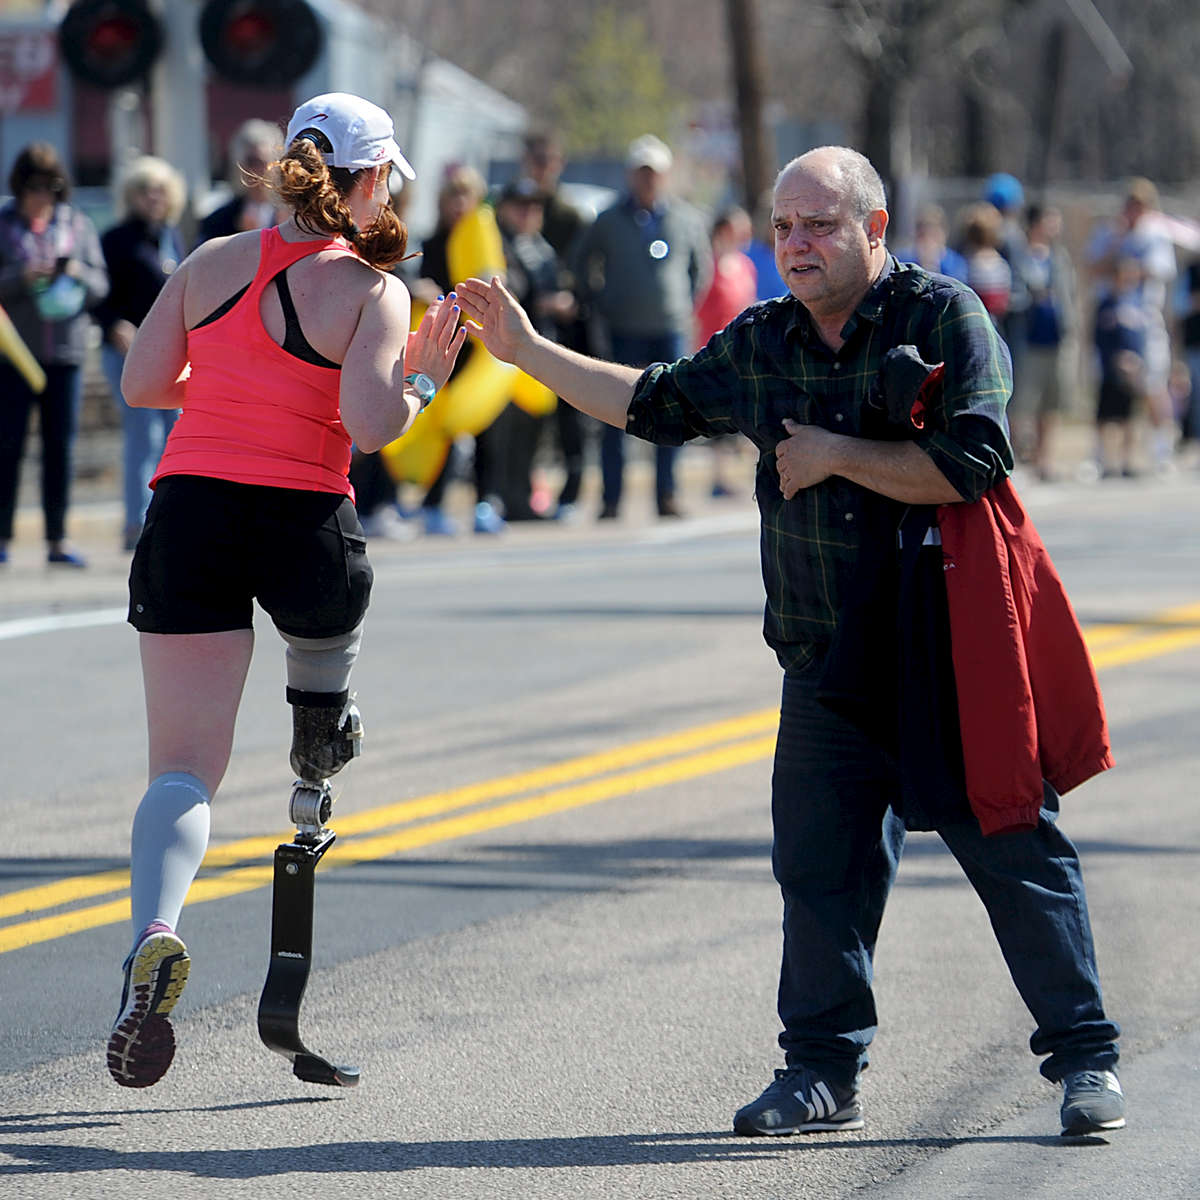 4/18/16-- FRAMINGHAM-- In downtown Framingham on Marathon Monday, Joe Chaves of Hudson high fives Kathryn McCauley.Daily News and Wicked Local Staff Photo/Art Illman